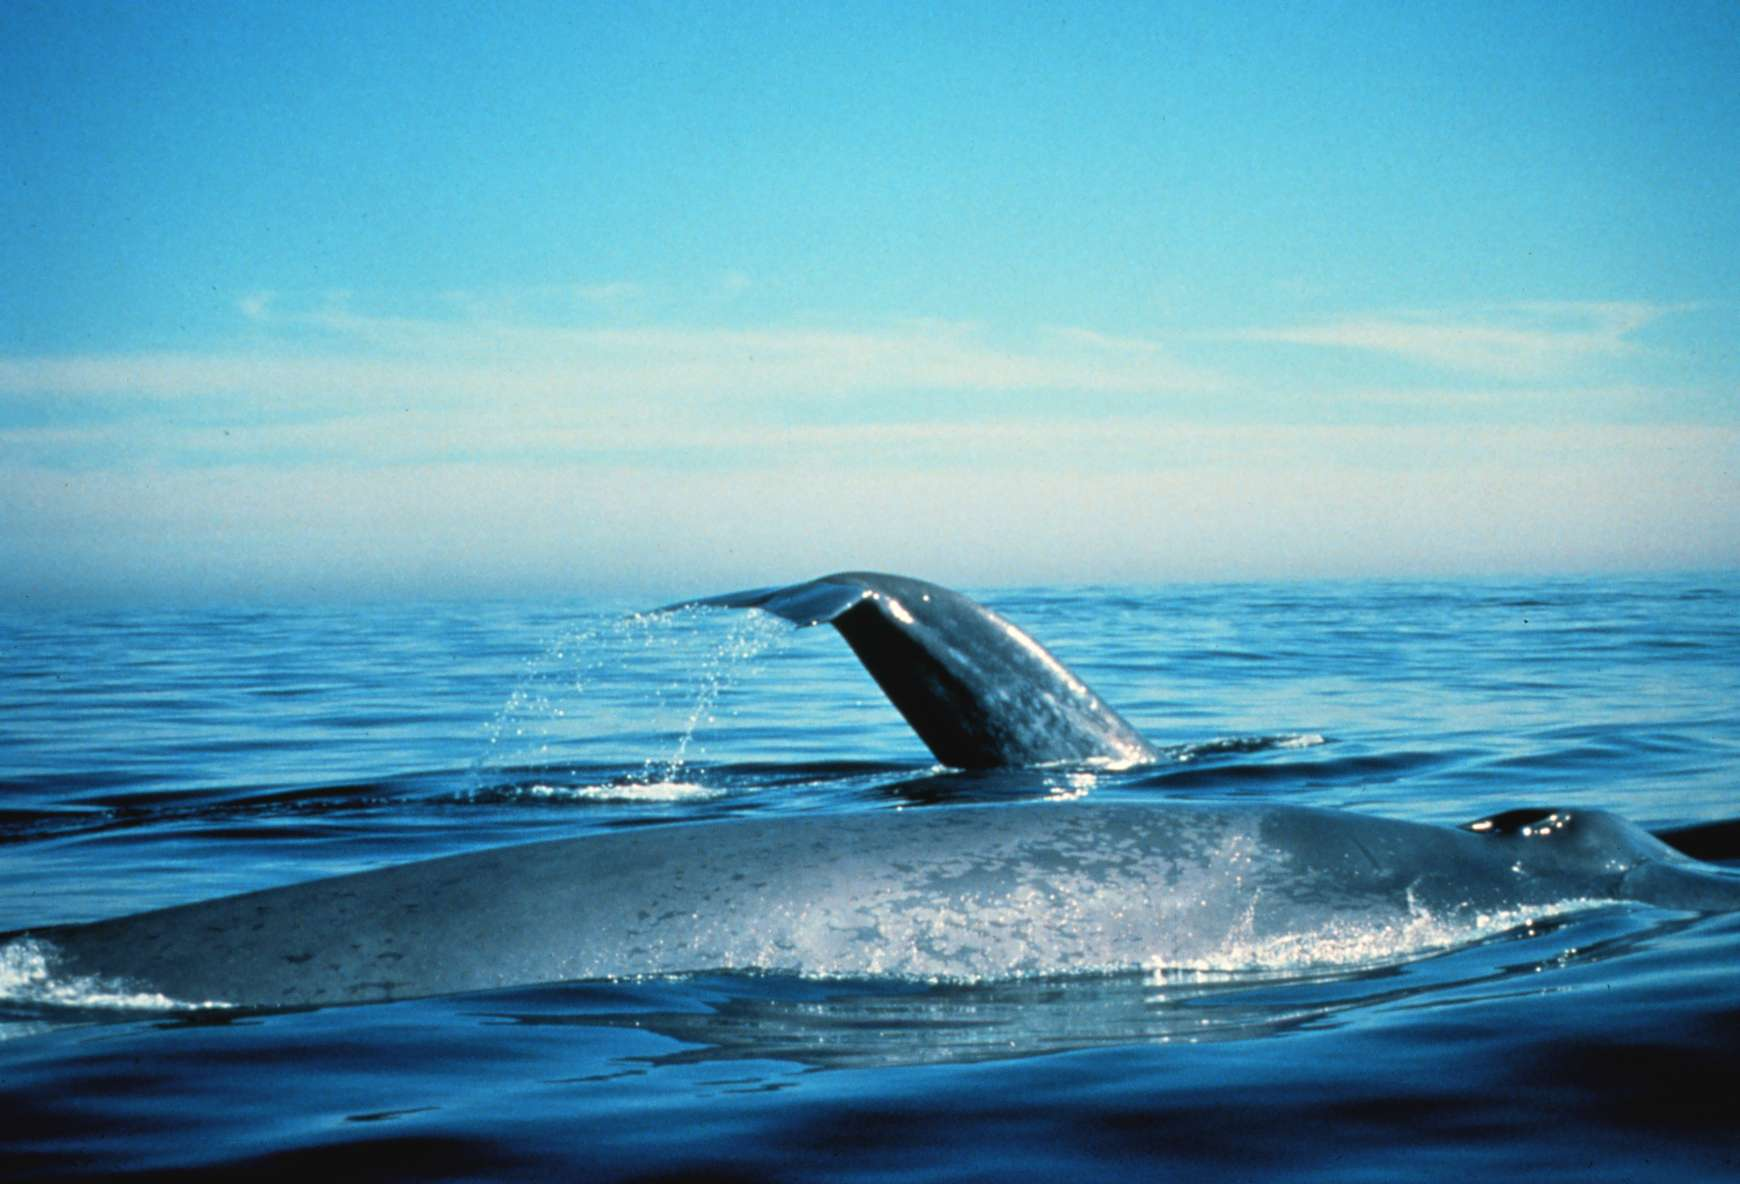 Blue whales on the surface. California, Gulf of the Farallones